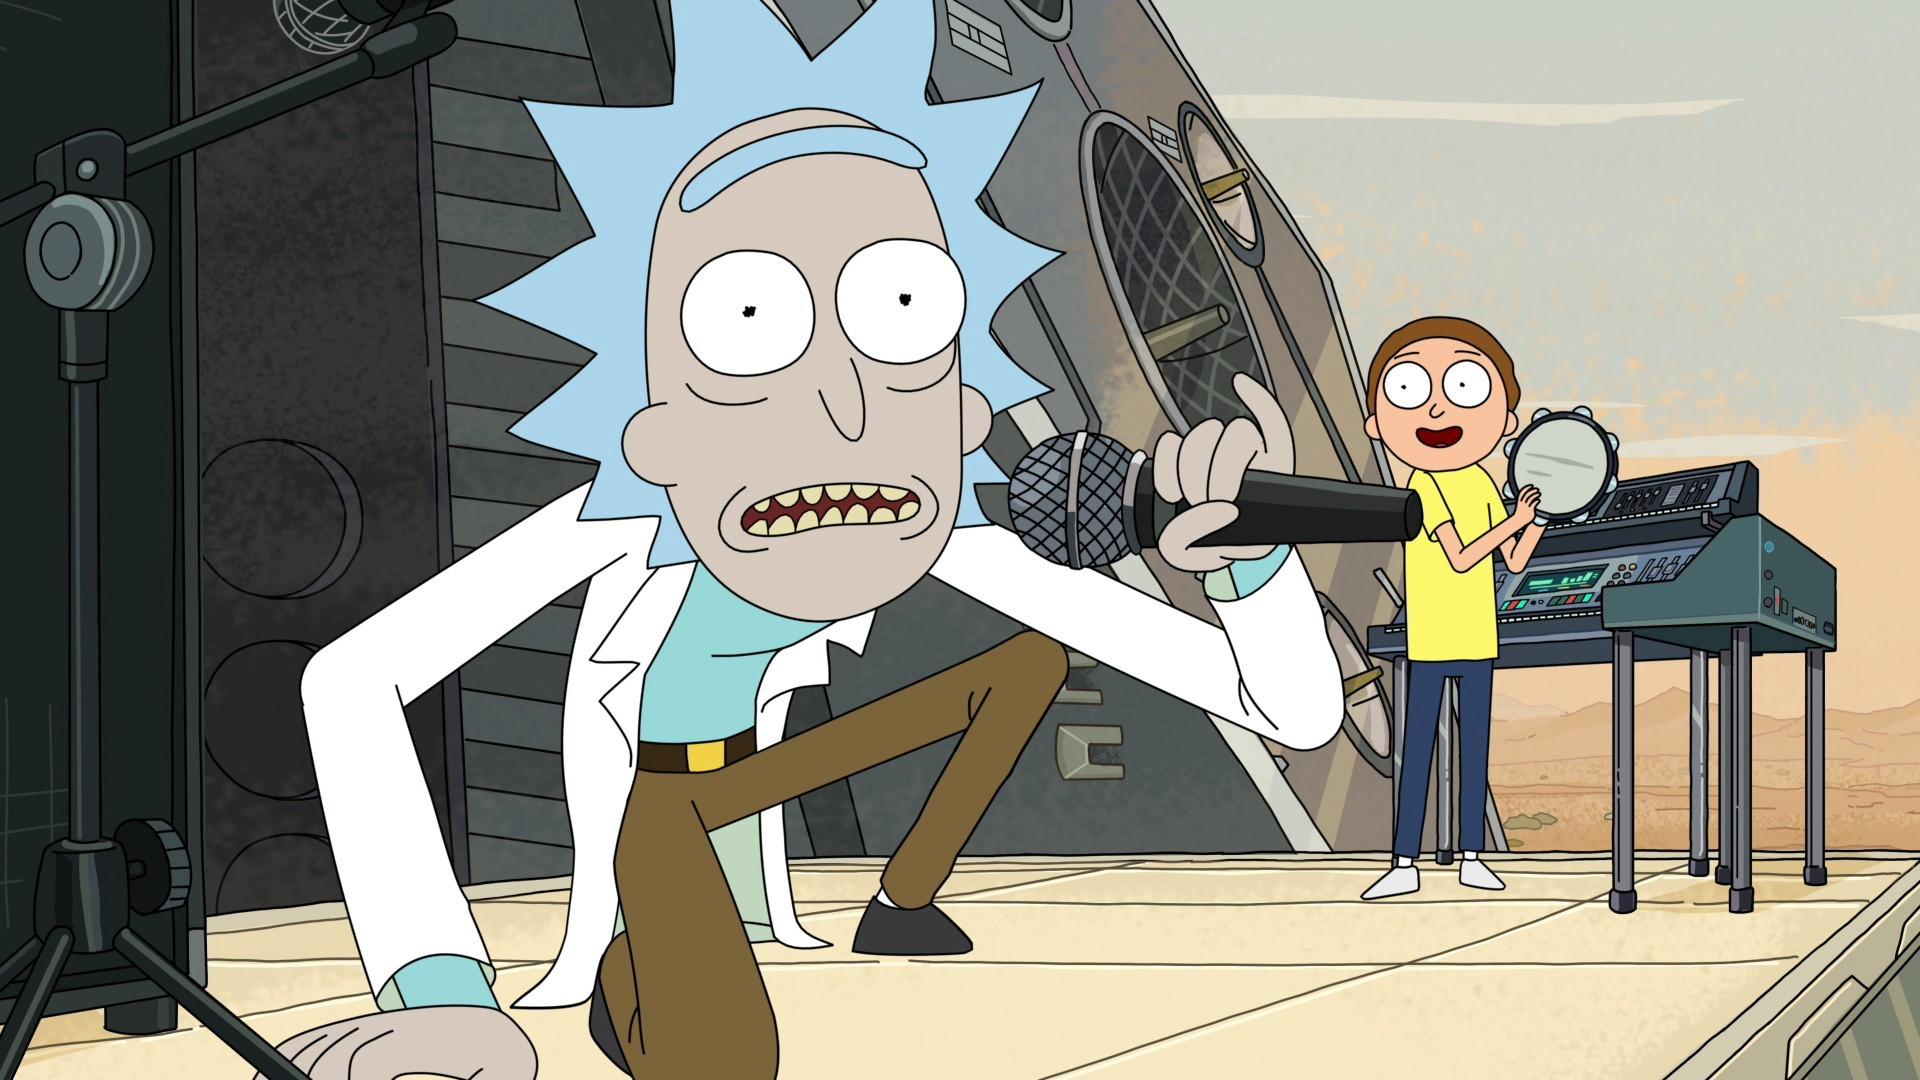 Rick and Morty season 4 release date, cast, trailer, episode